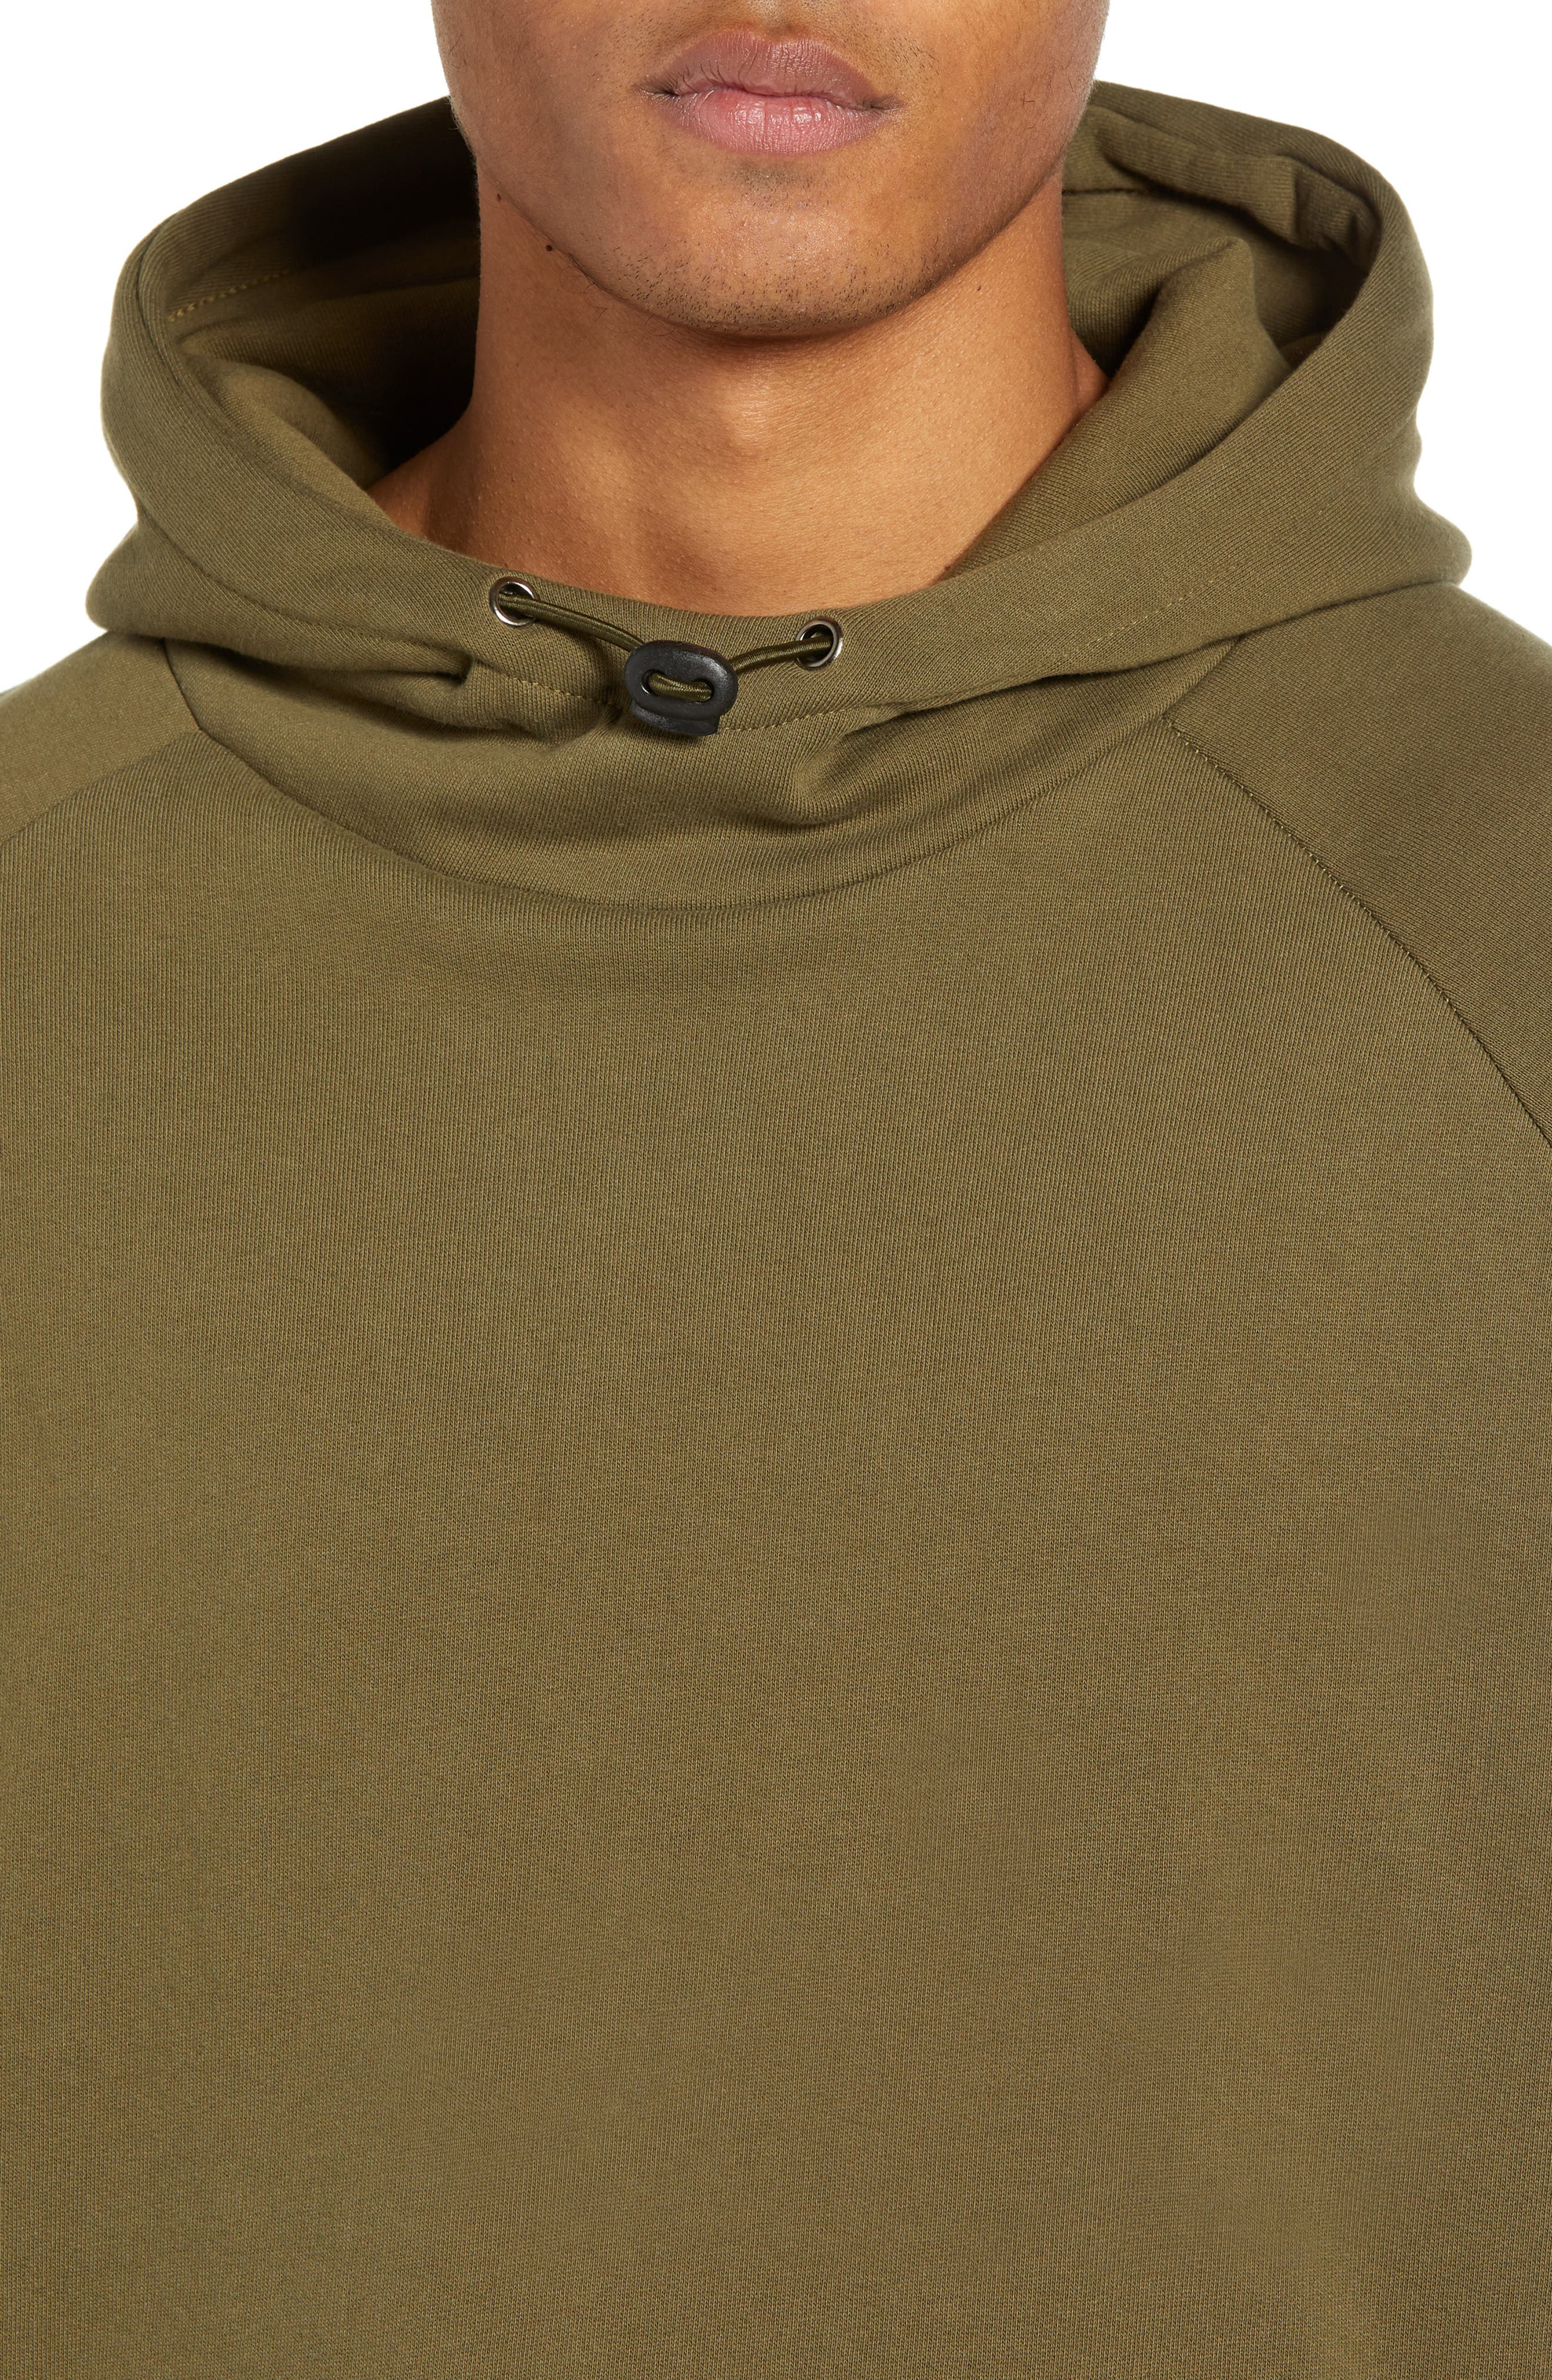 Patch Pocket Pullover Hoodie,                             Alternate thumbnail 4, color,                             OLIVE